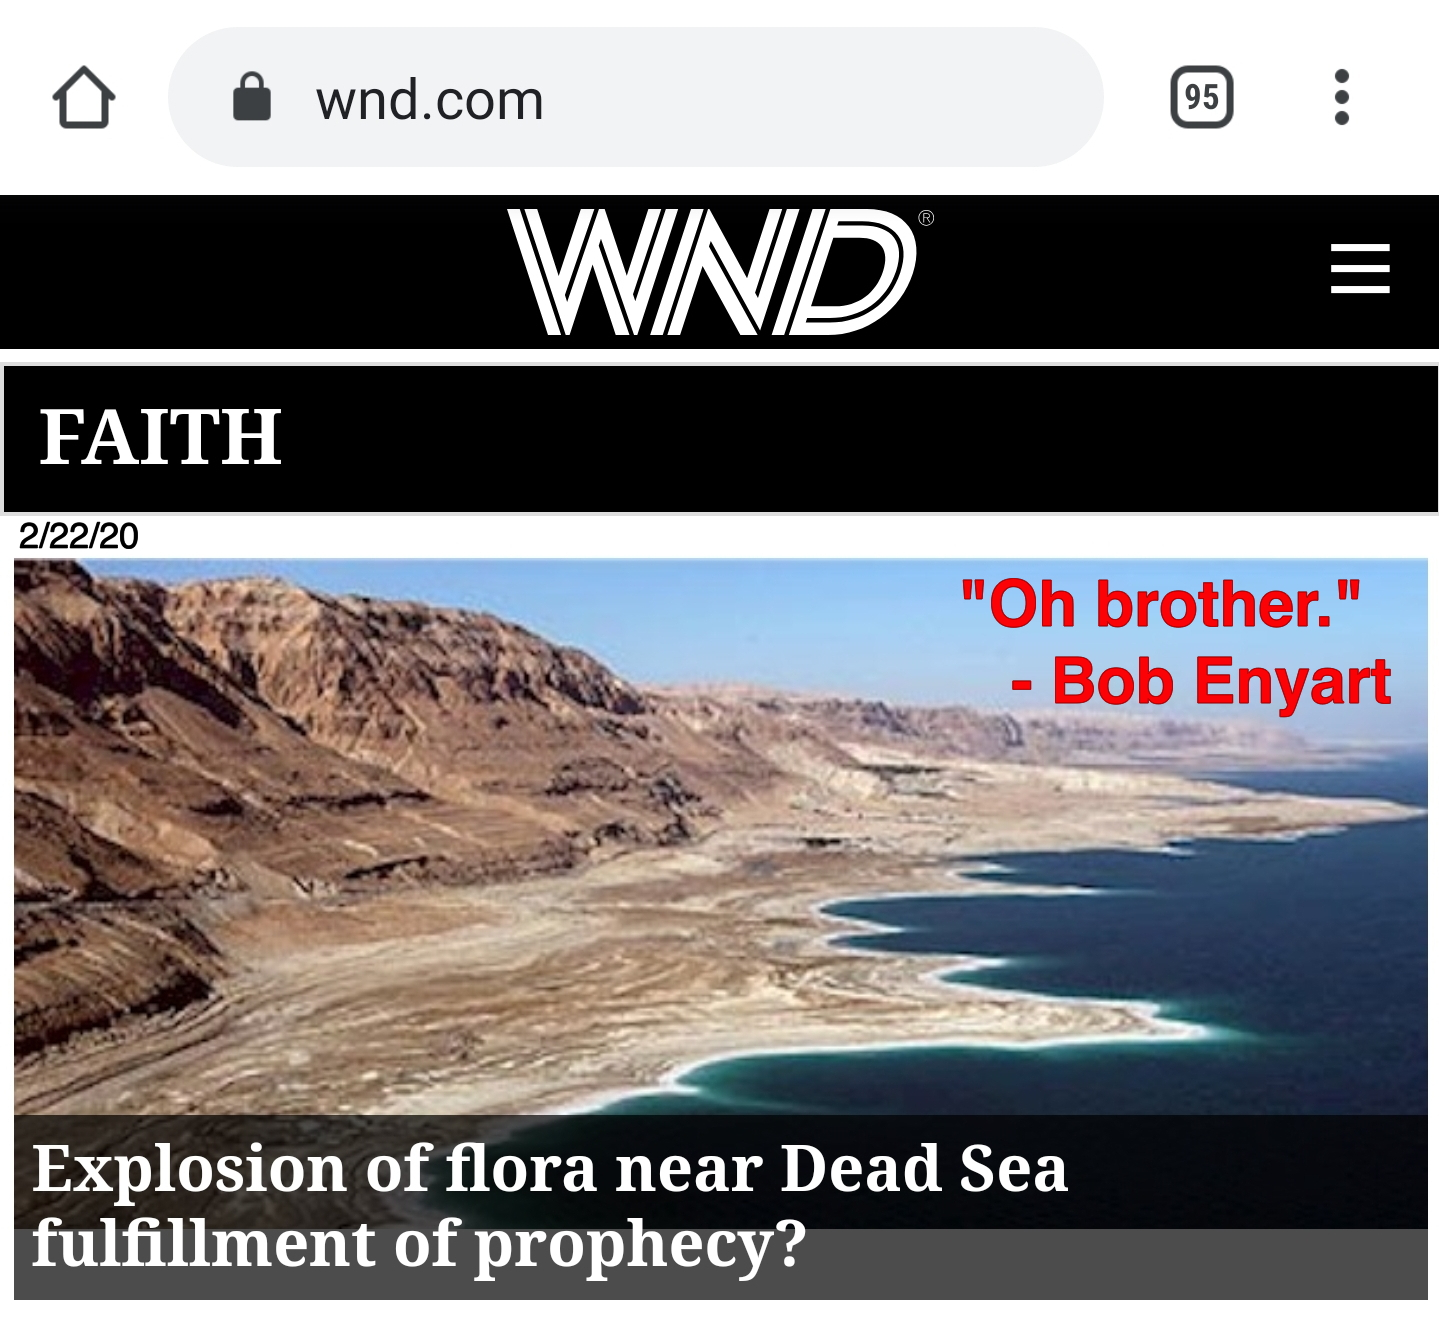 Another embarrasing End Times headline by WND: Dead Sea flora sign of the last days?